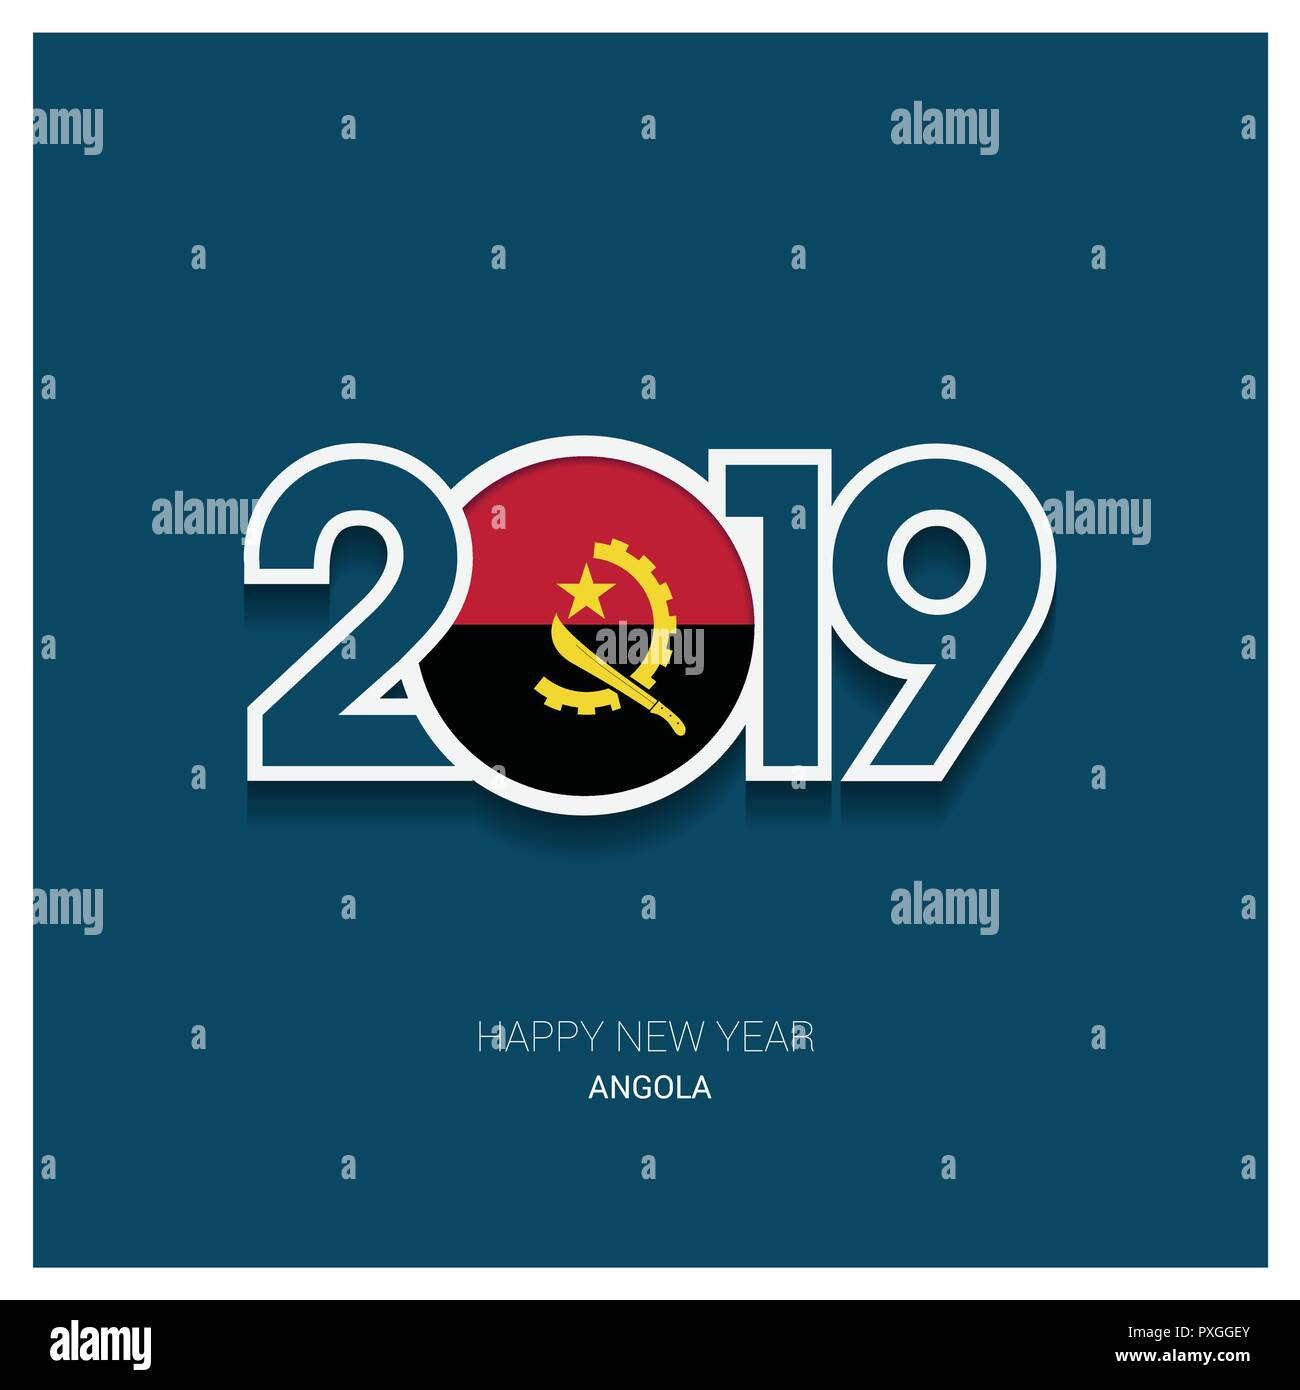 2019 Angola Typography, Happy New Year Background - Stock Image